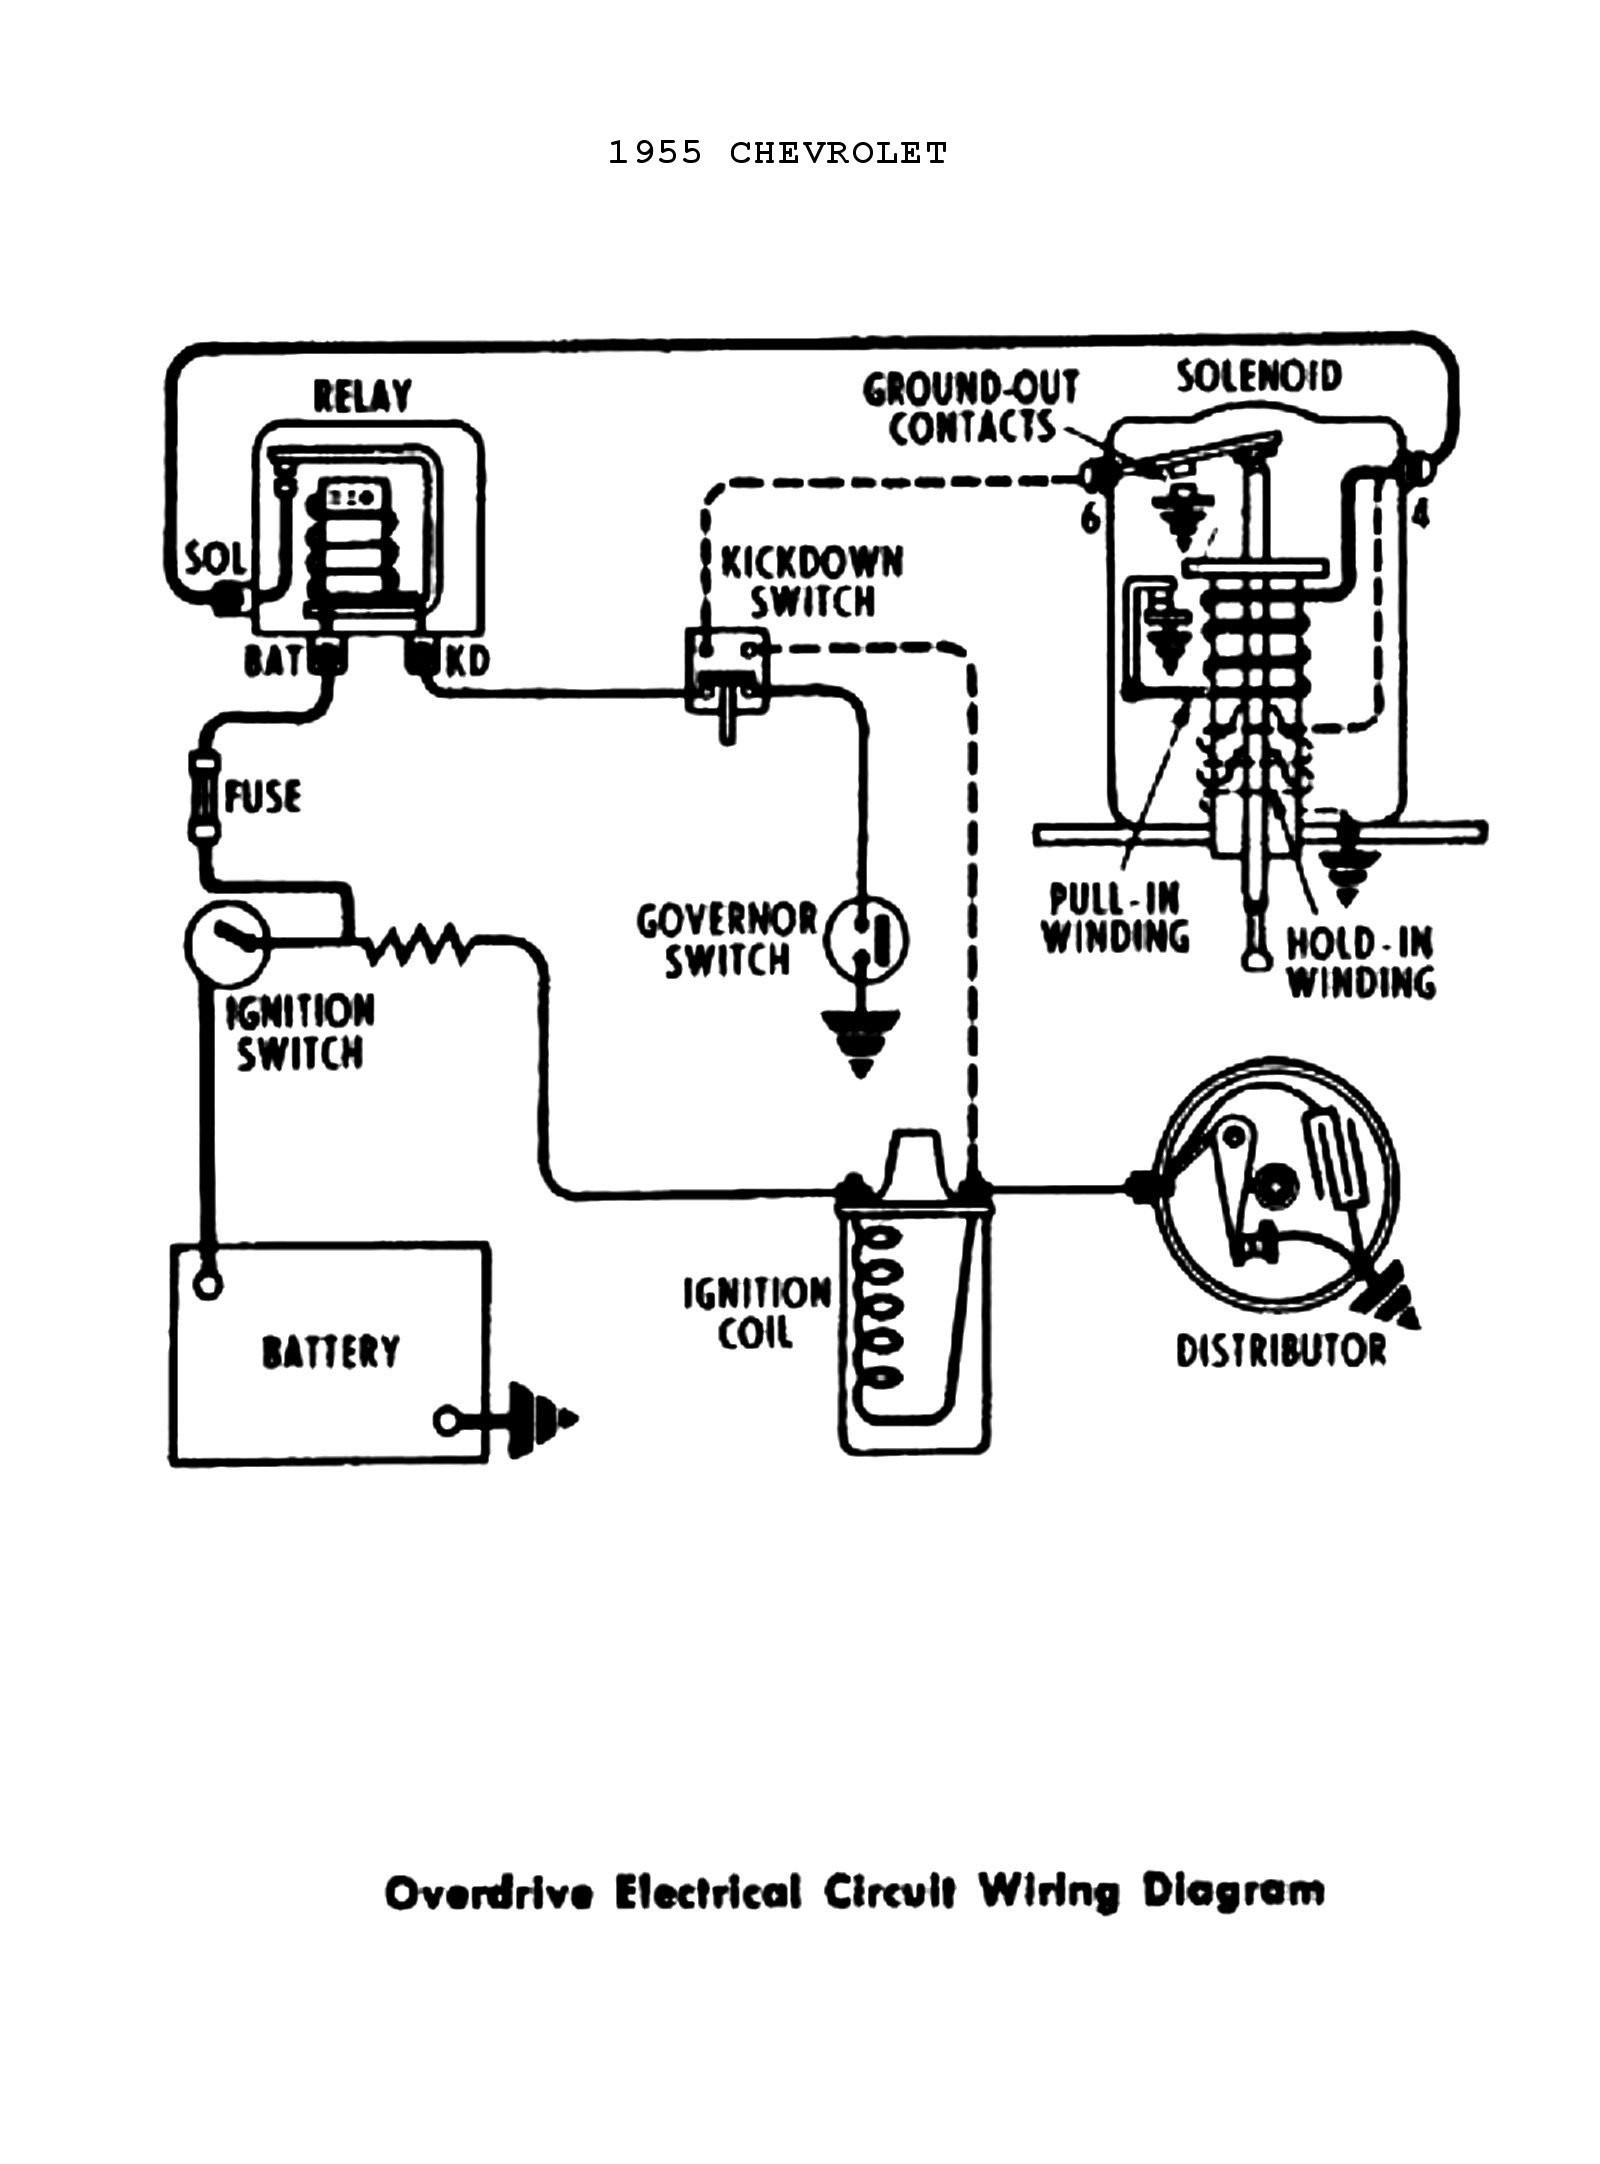 Guitar Cable Wiring Diagram Inspirationa Electrical Block Diagram Unique Basic Electrical Circuit Diagram